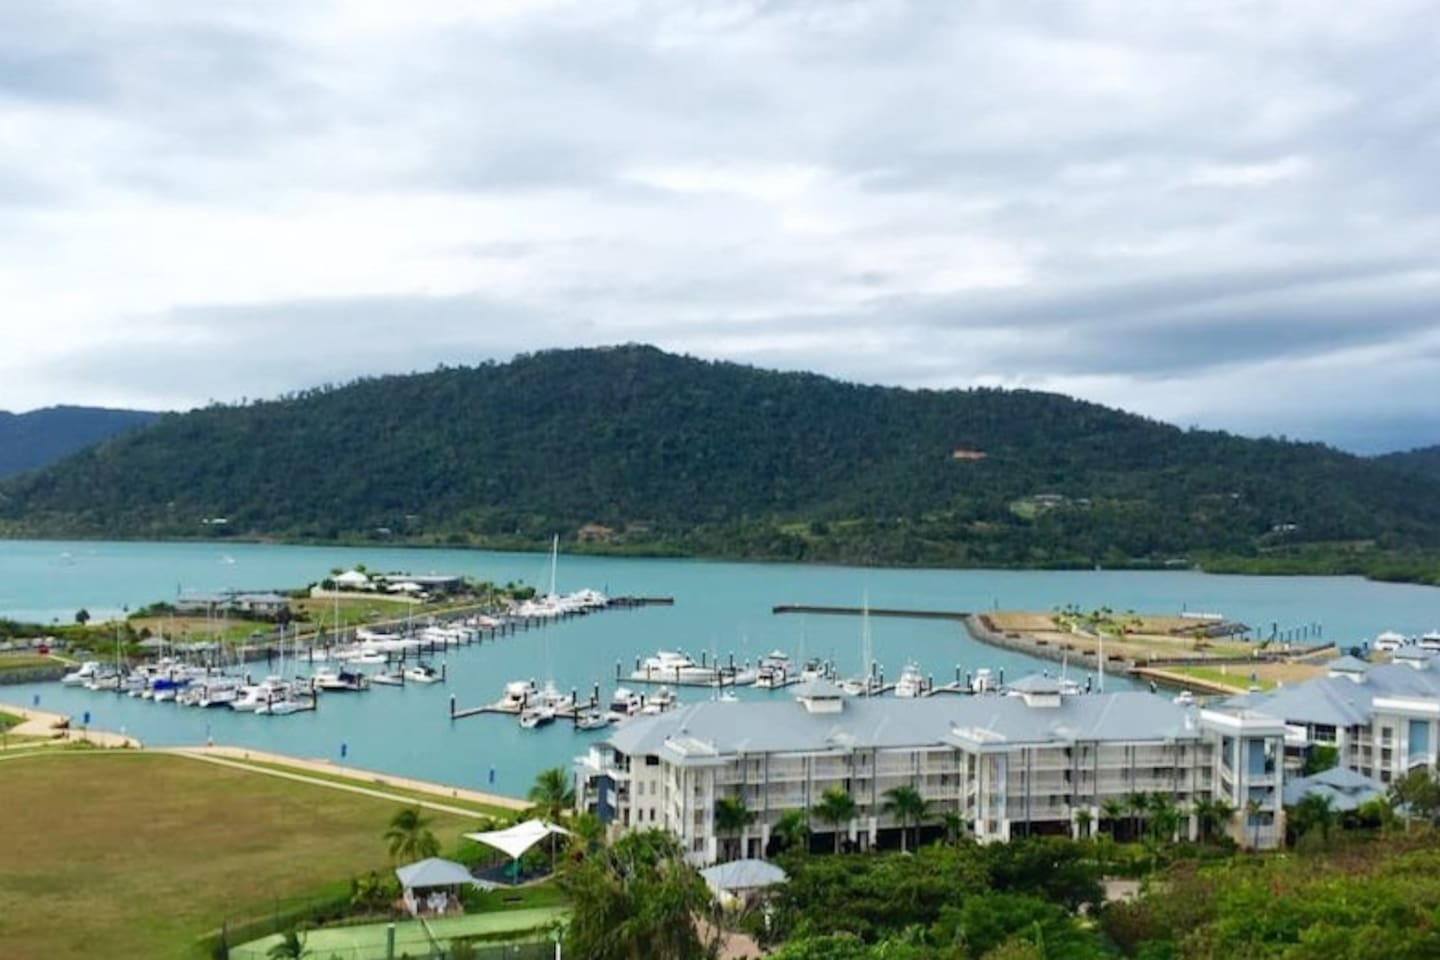 View to the Port of Airlie and Airlie Beach